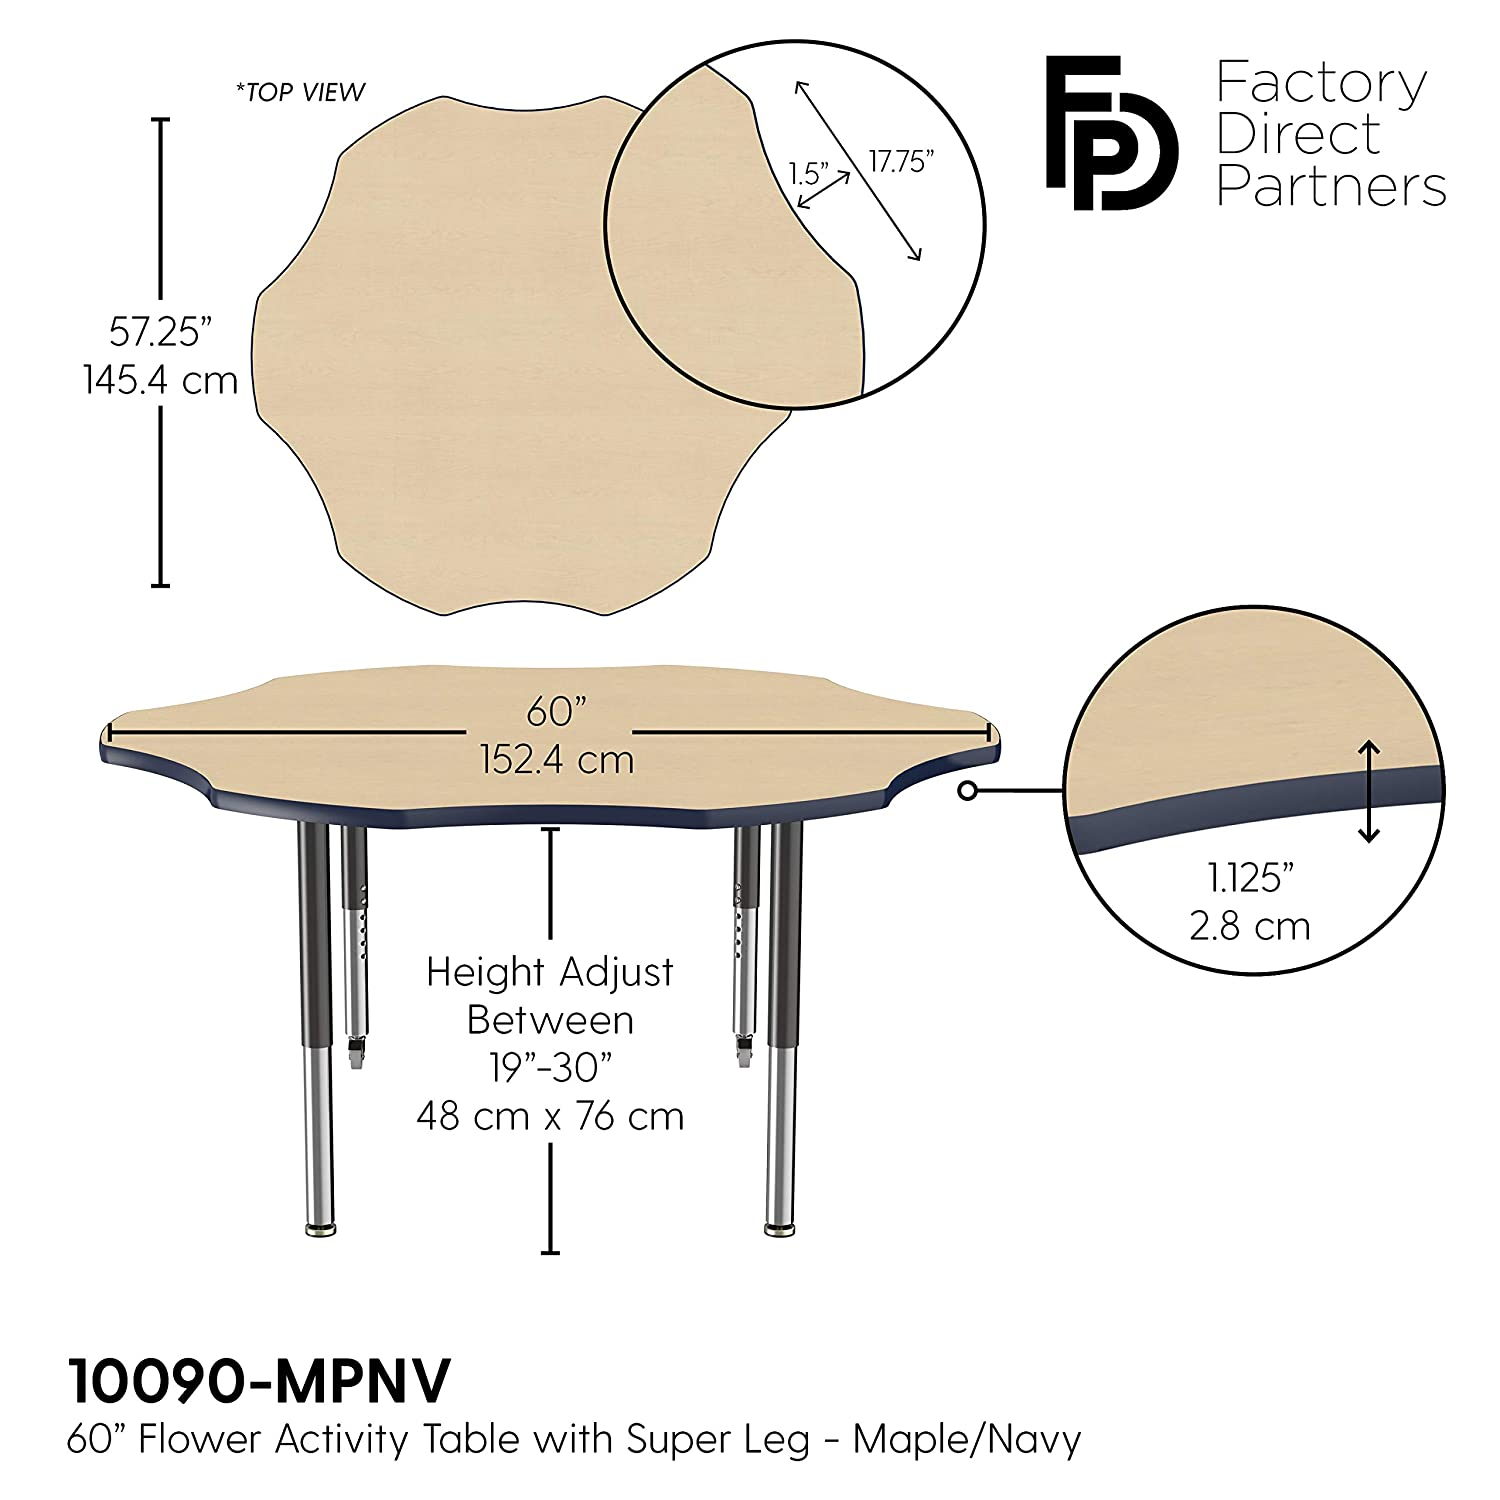 Adjustable Height 15-24 inches FDP Flower Activity School and Classroom Kids Table Maple Top and Black Edge 60 inch Toddler Legs for Collaborative Seating Environments